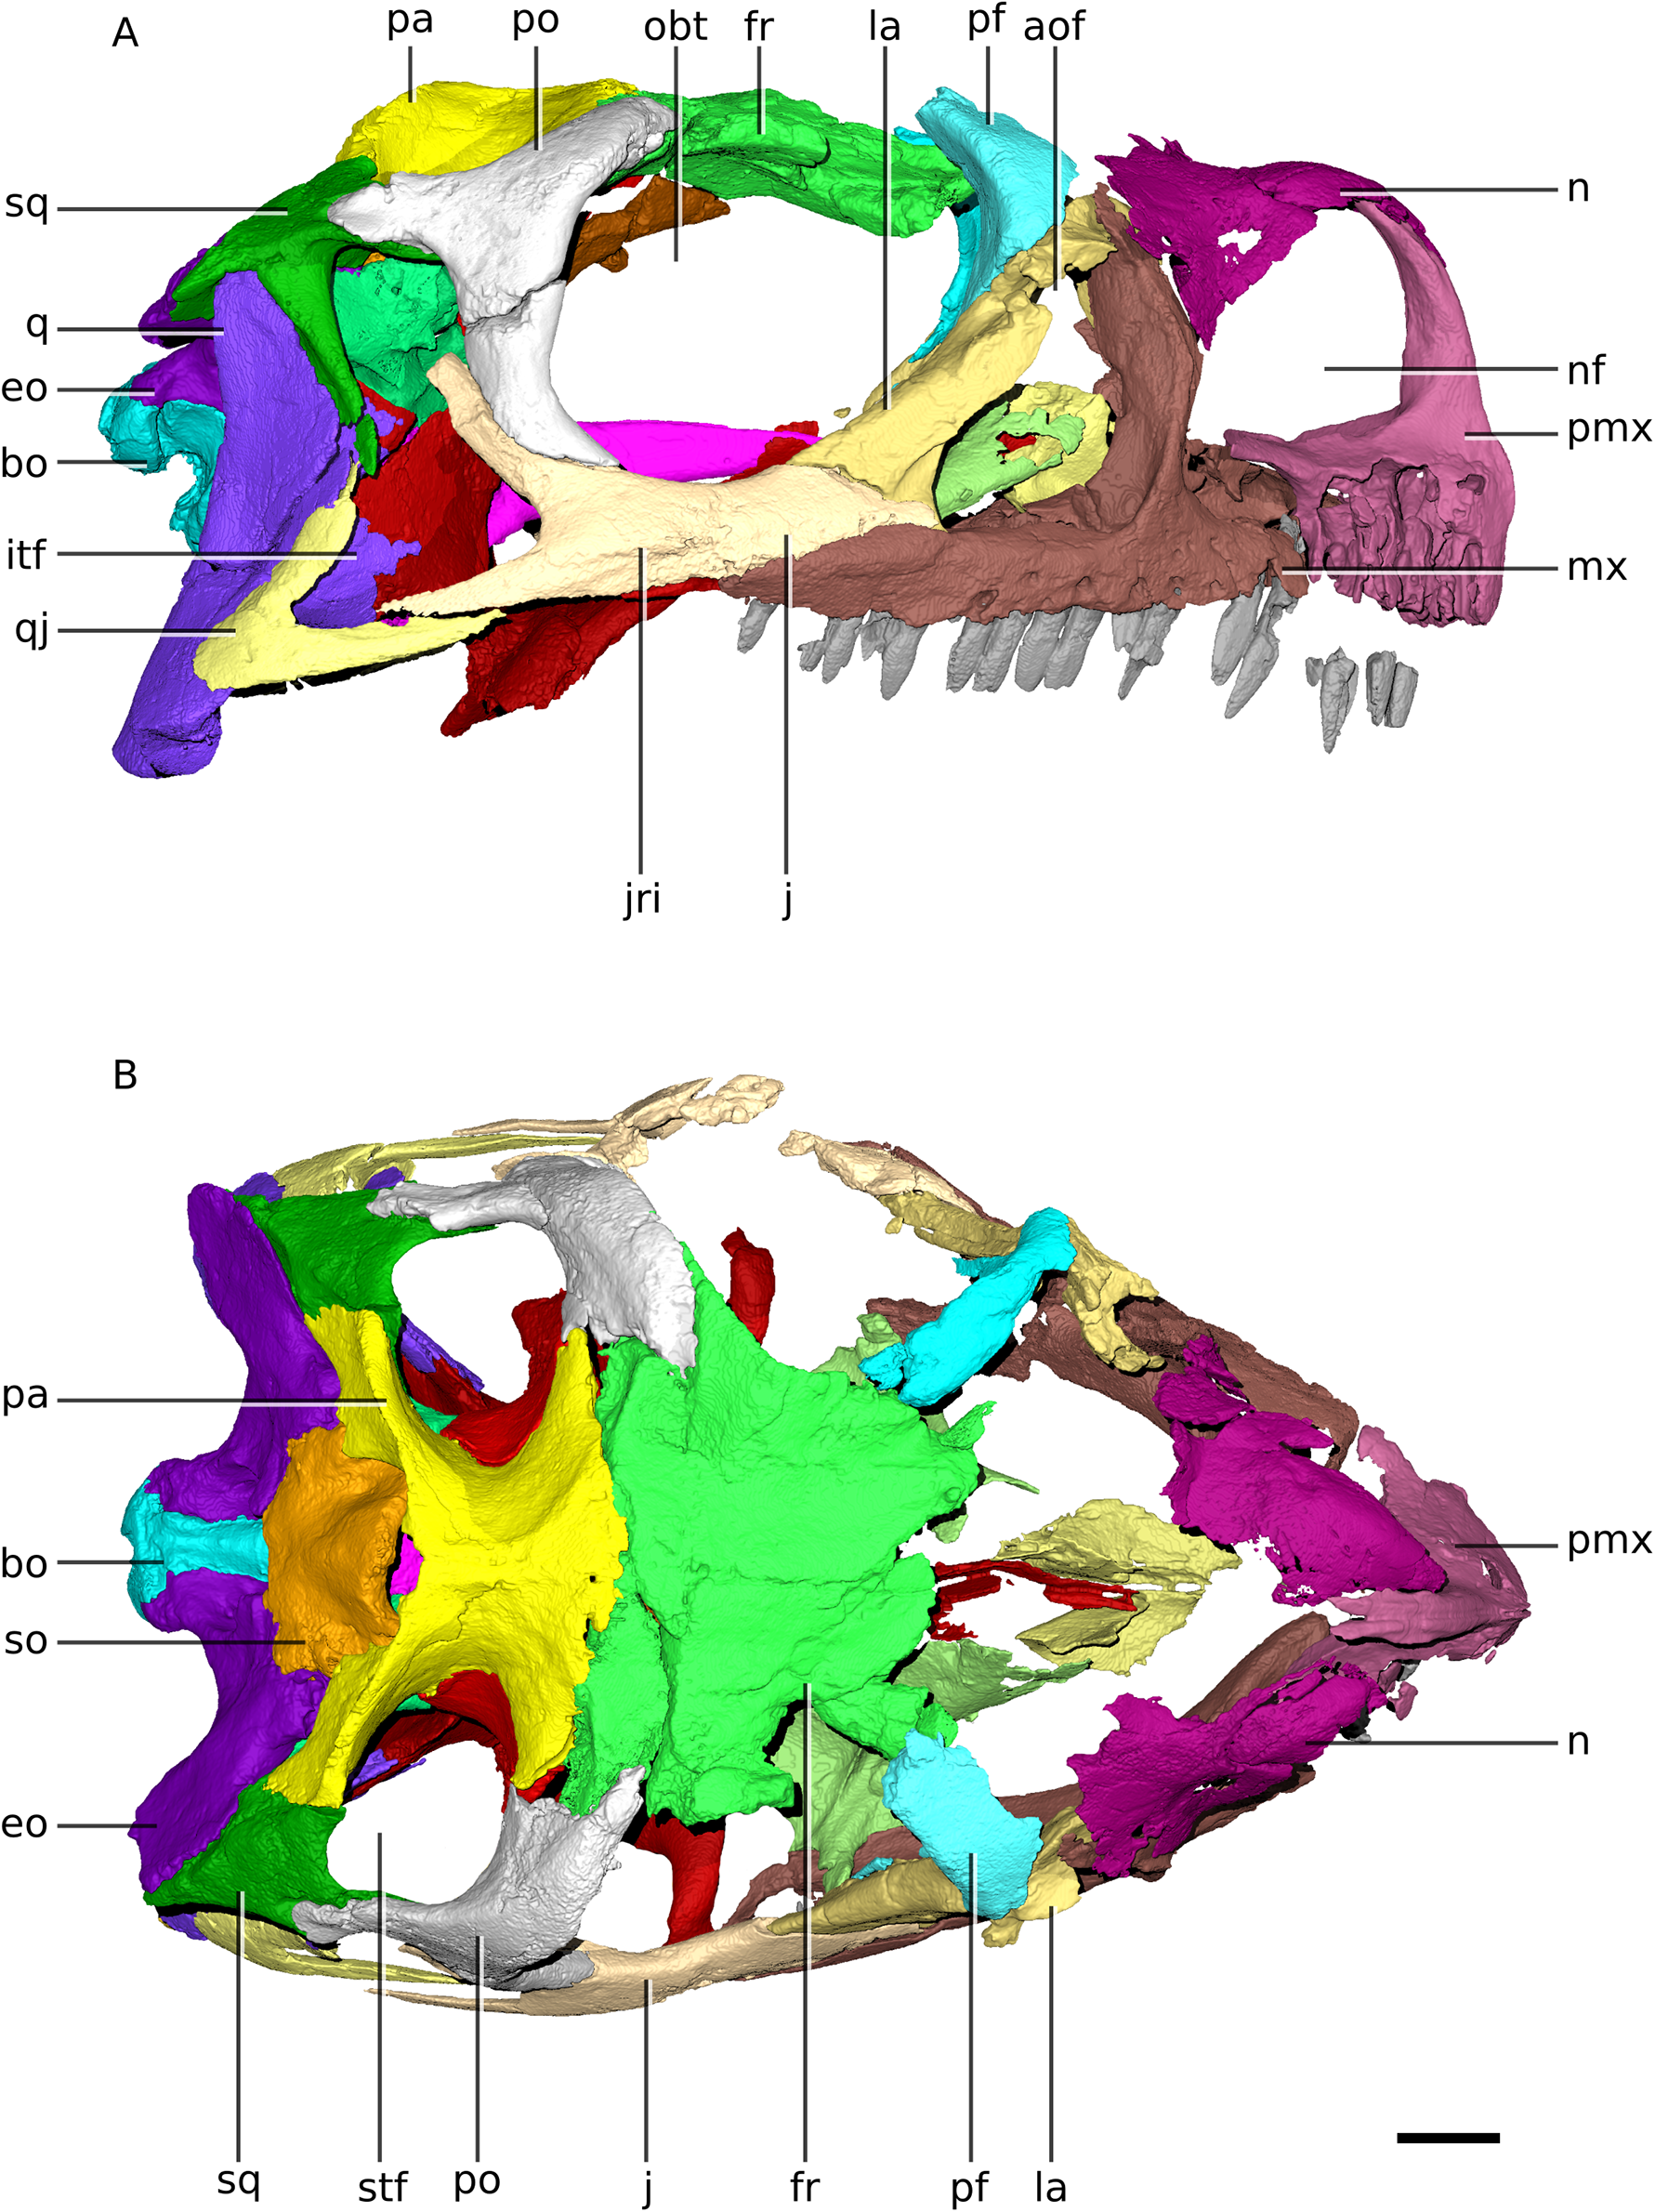 Ngwevu intloko: a new early sauropodomorph dinosaur from the